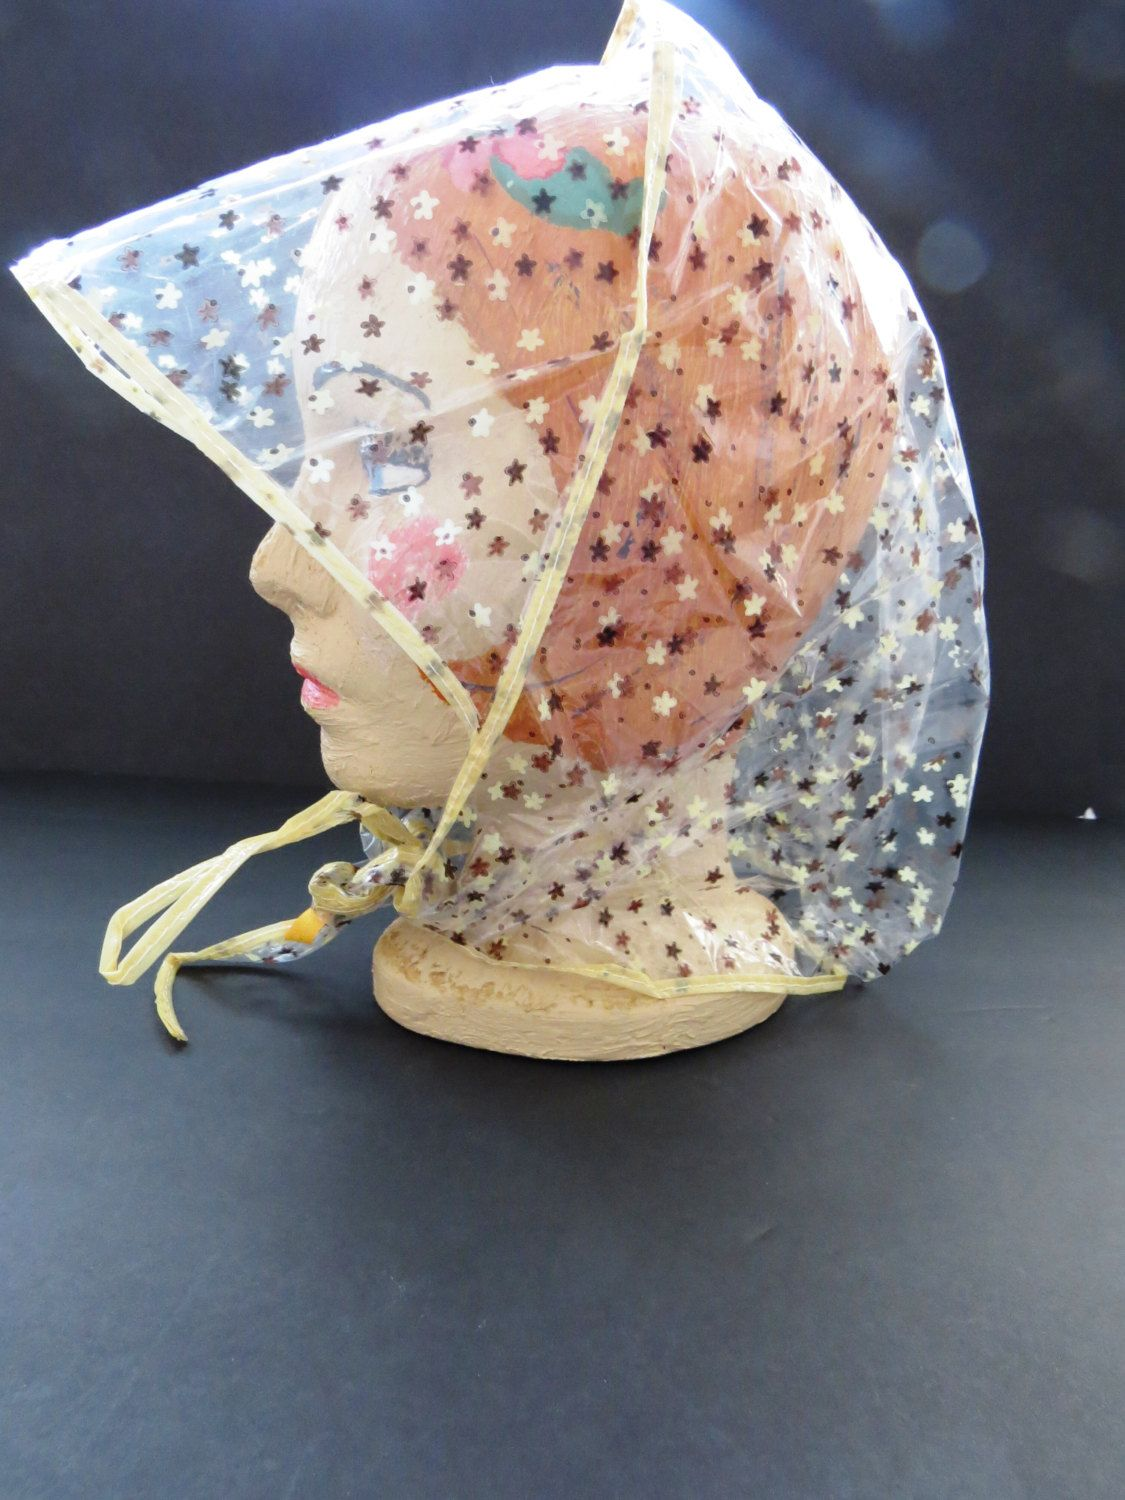 Retro Plastic Rain Hat with Visor - Brown Yellow Stars Mod Rain Bonnet -  Cover Up Head Rain Gear - Womens Accessories - Foldable Rain Cap by  shabbyshopgirls ... ef3ae45b8a82